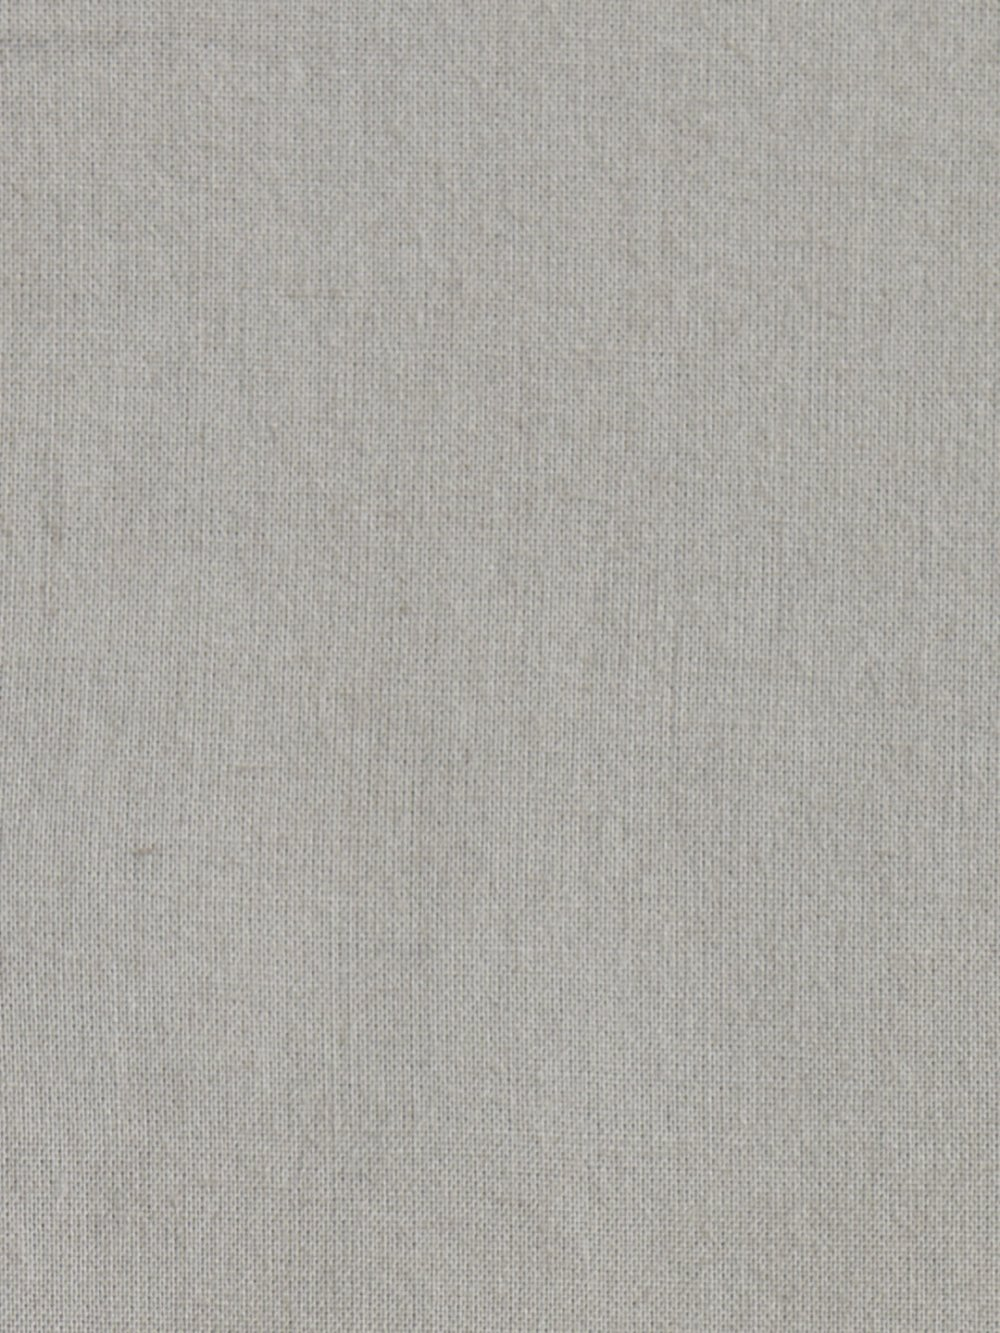 Organic Clothing Linen Texture